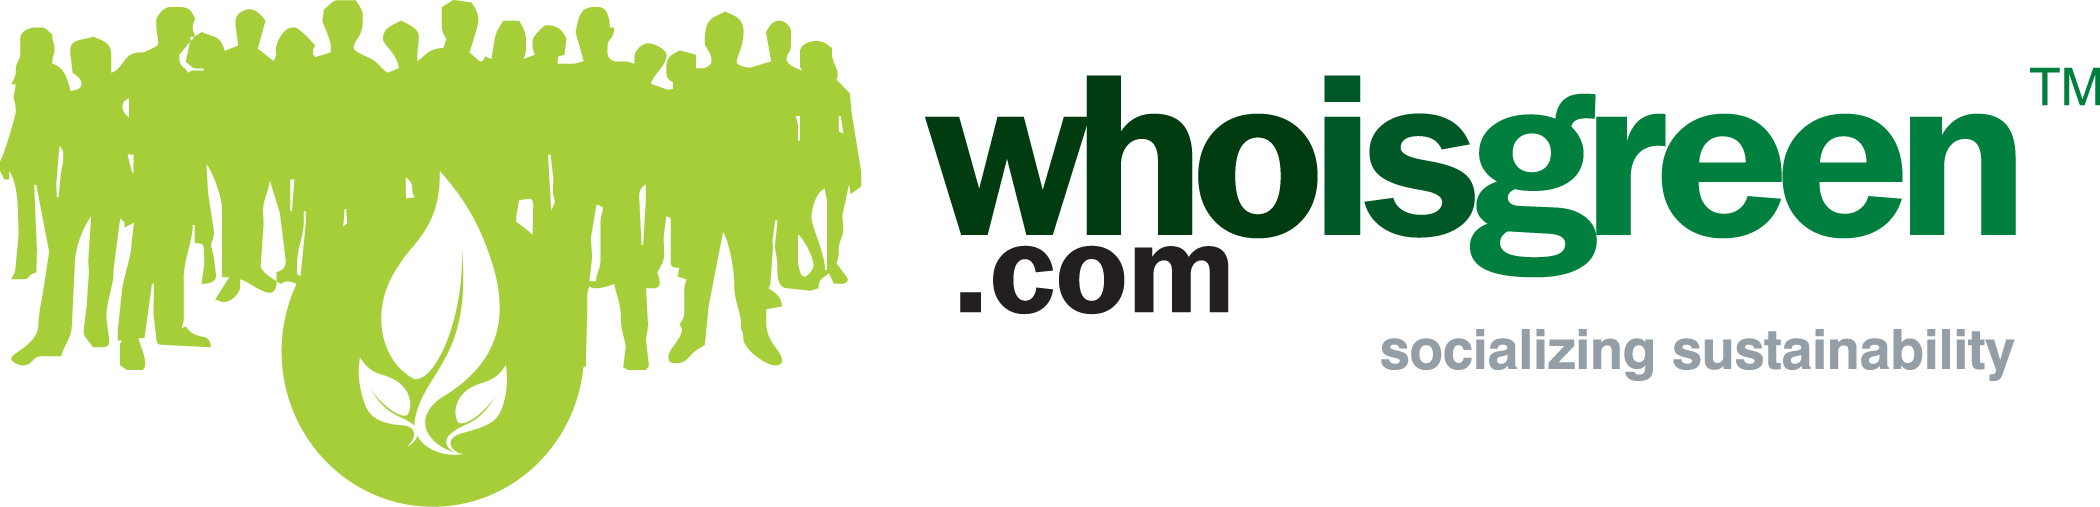 Whoisgreen.com Launches in NYC